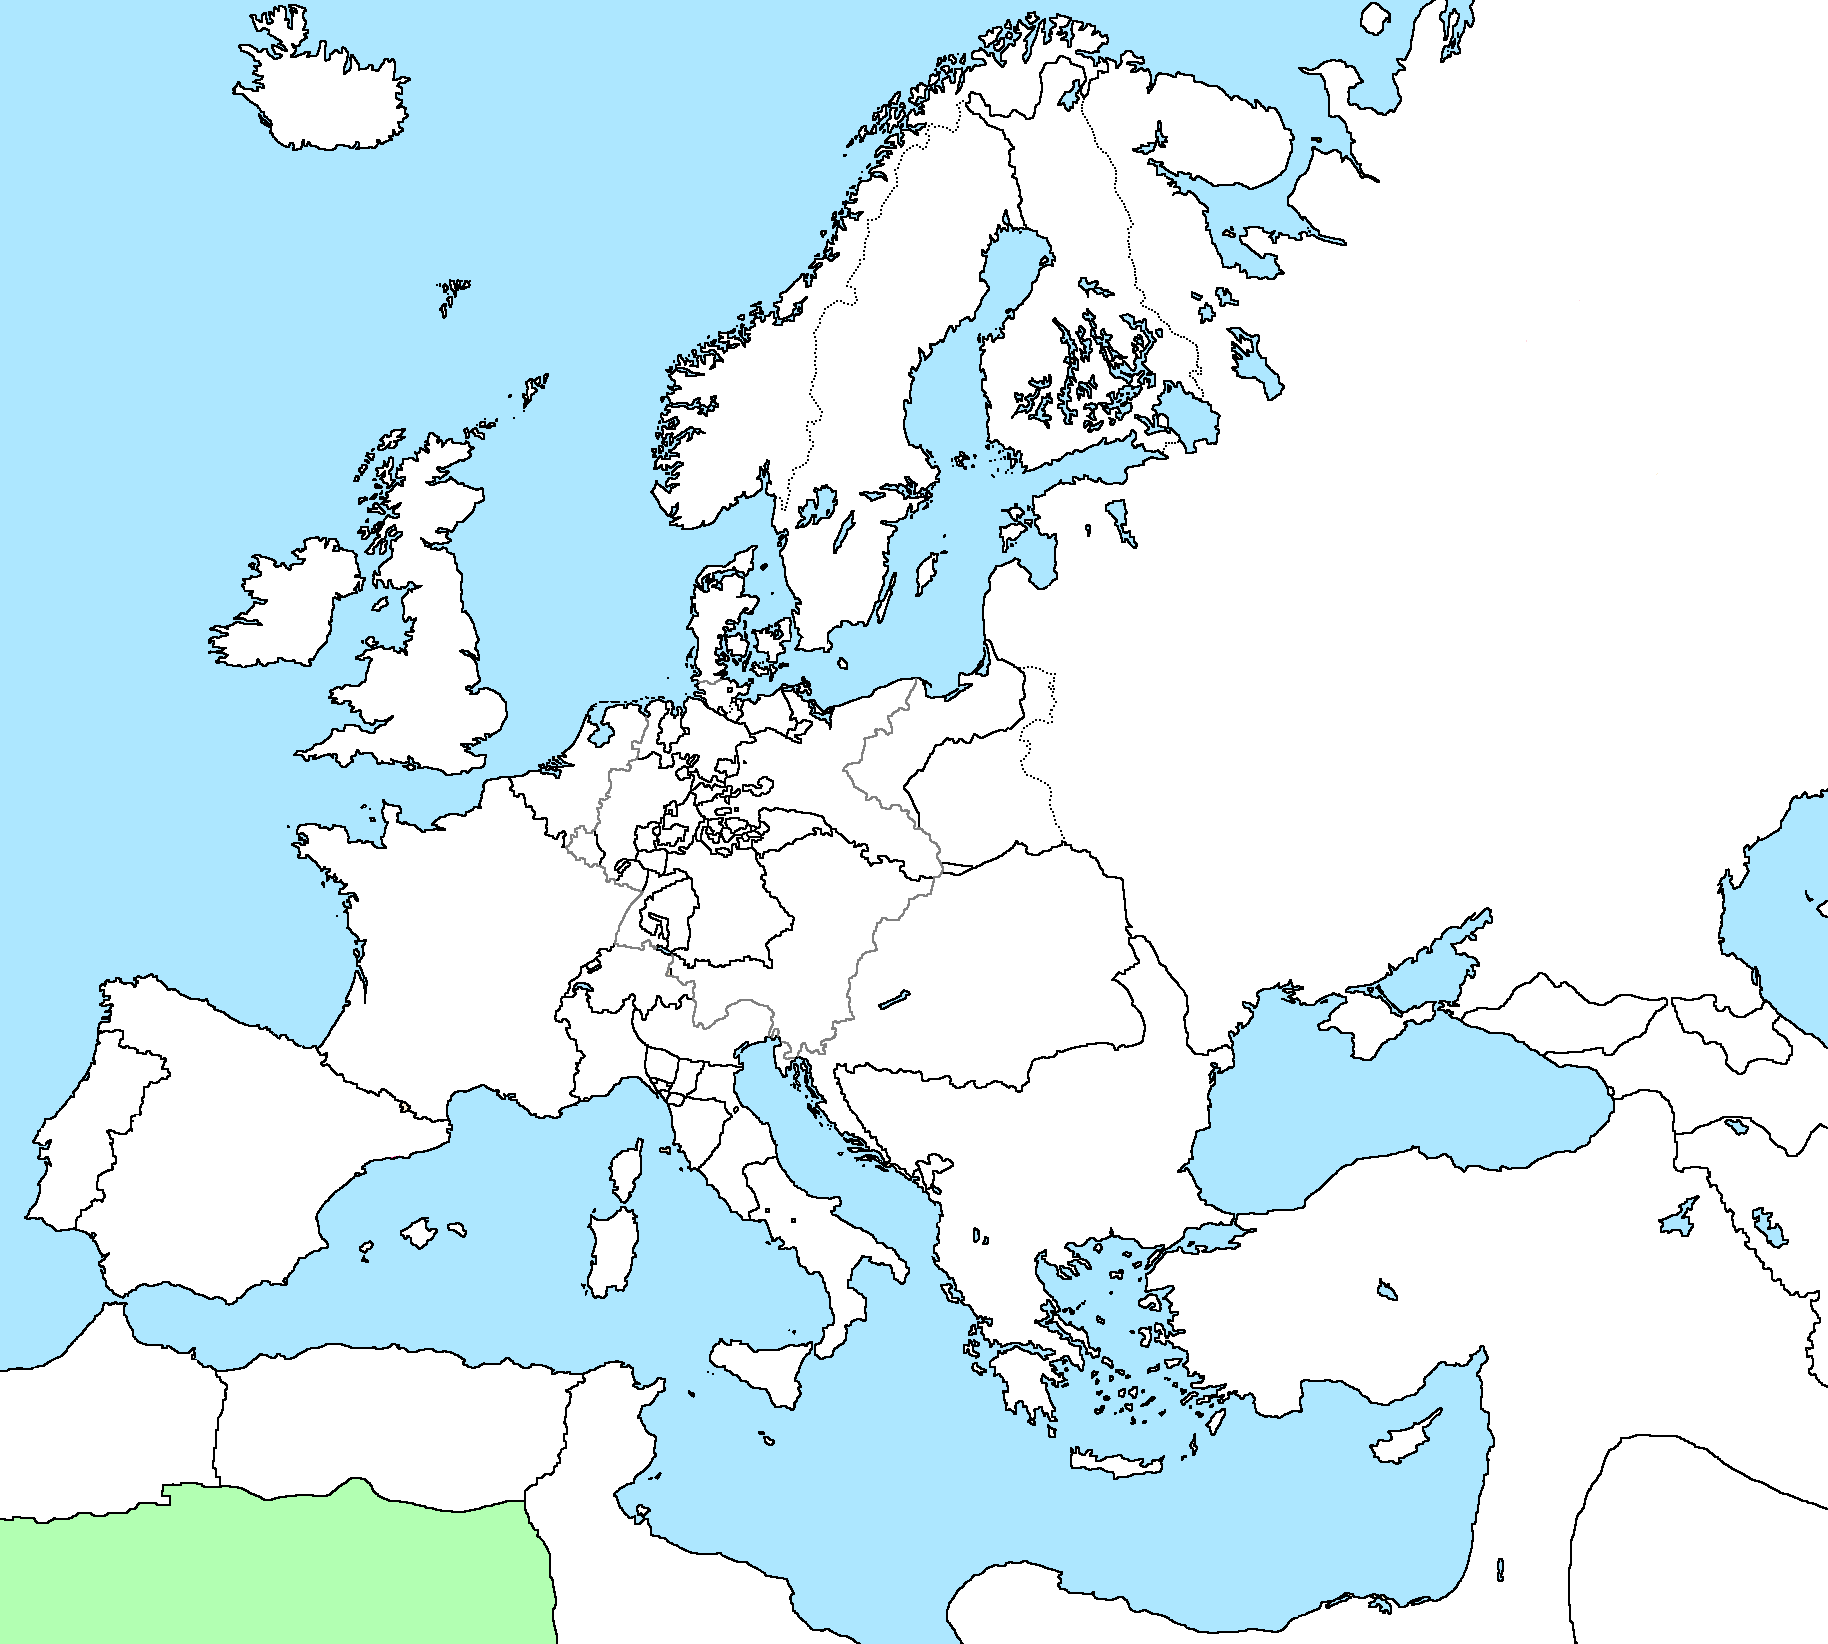 Blank Map Of Europe In 1815